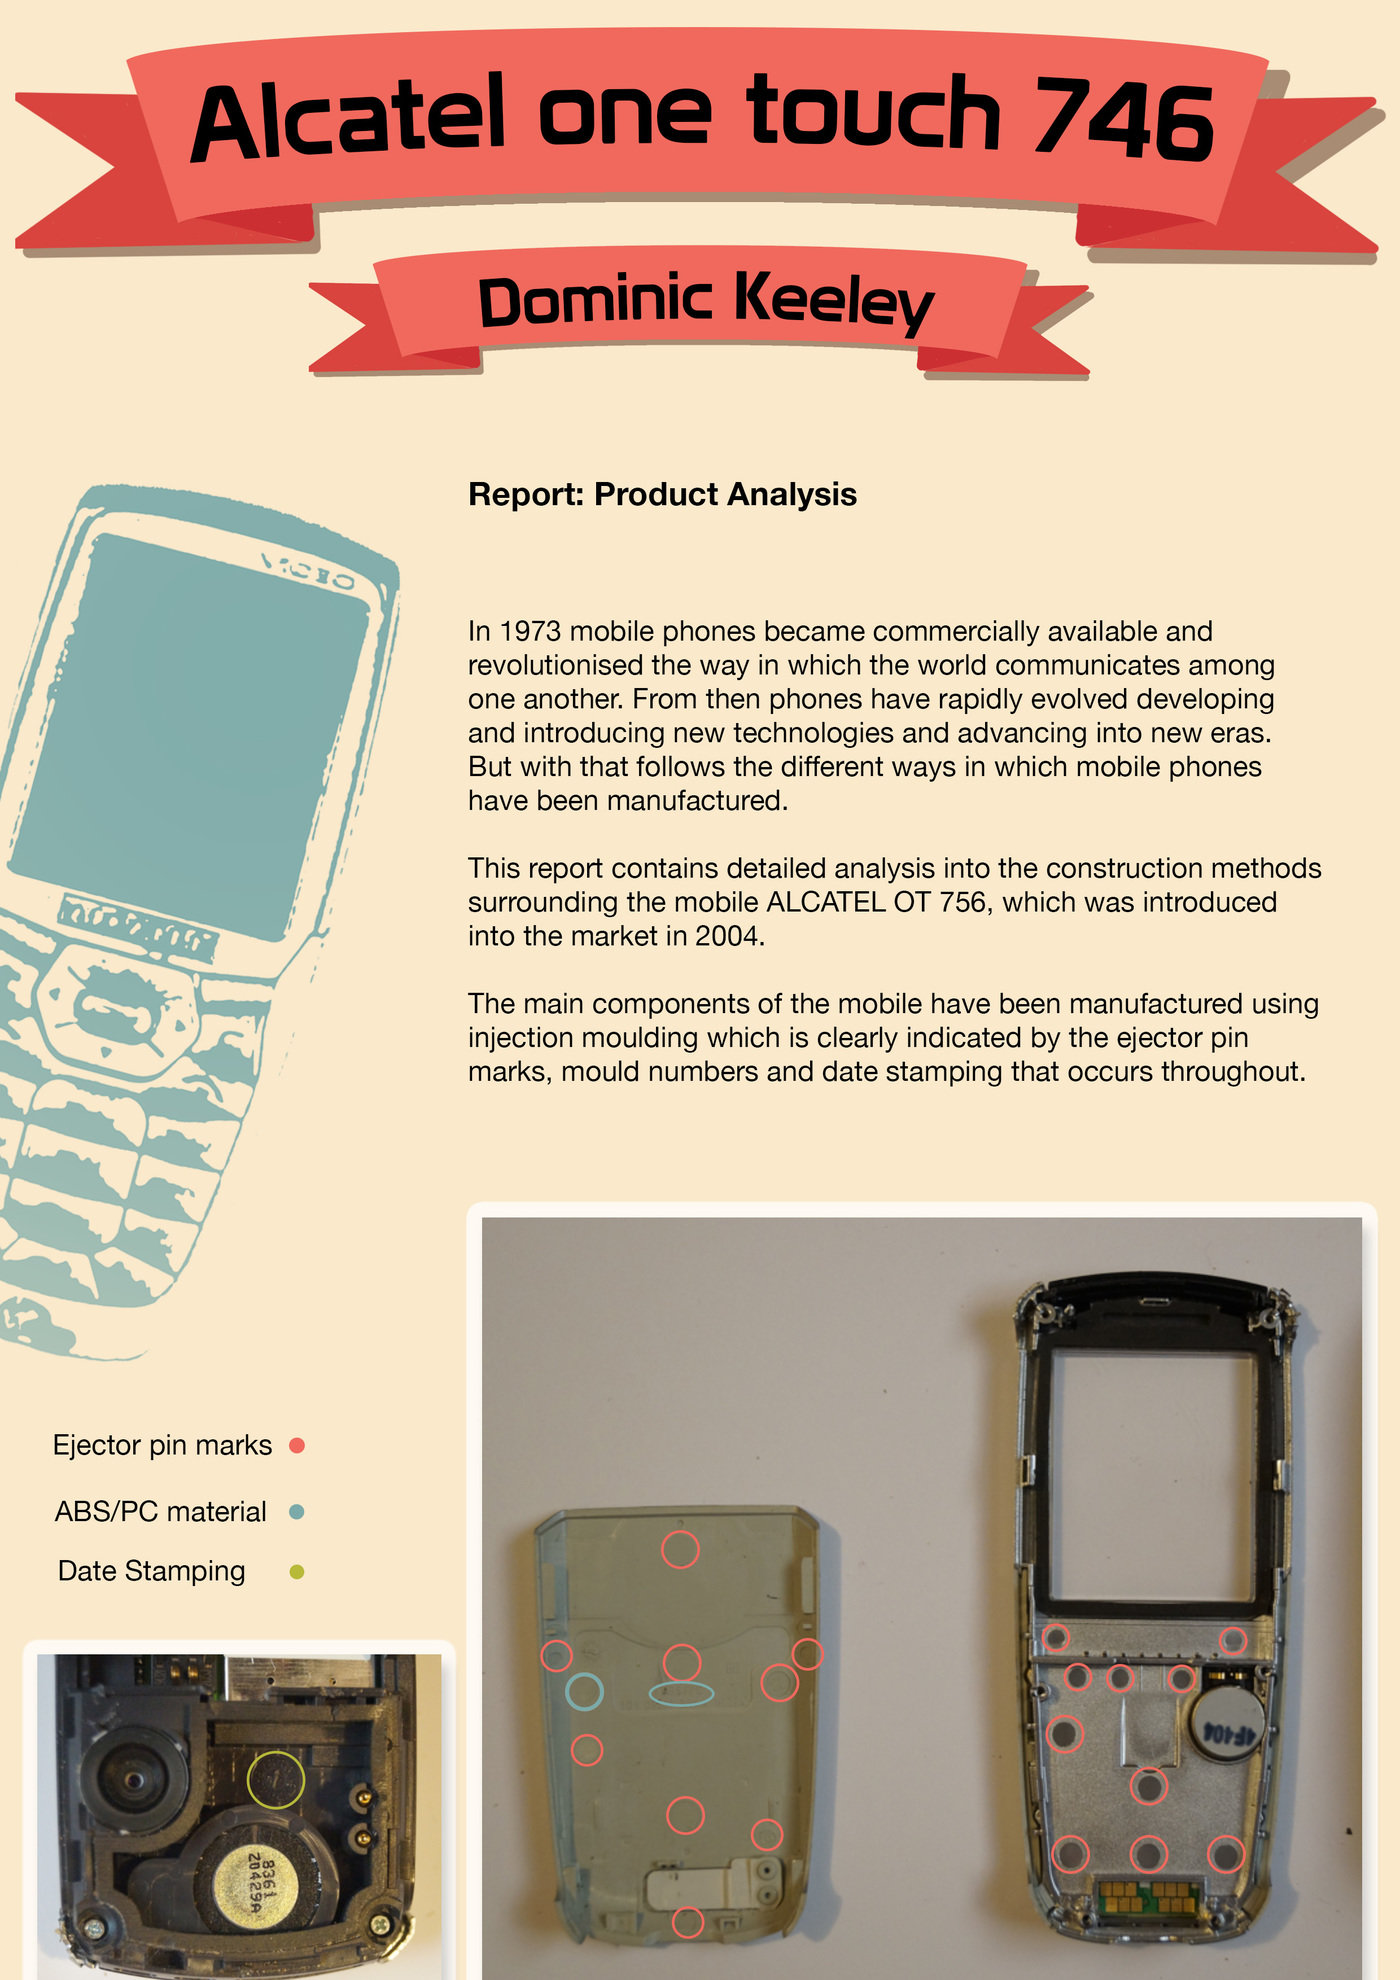 Mobile Phone by Dominic Keeley at Coroflot com